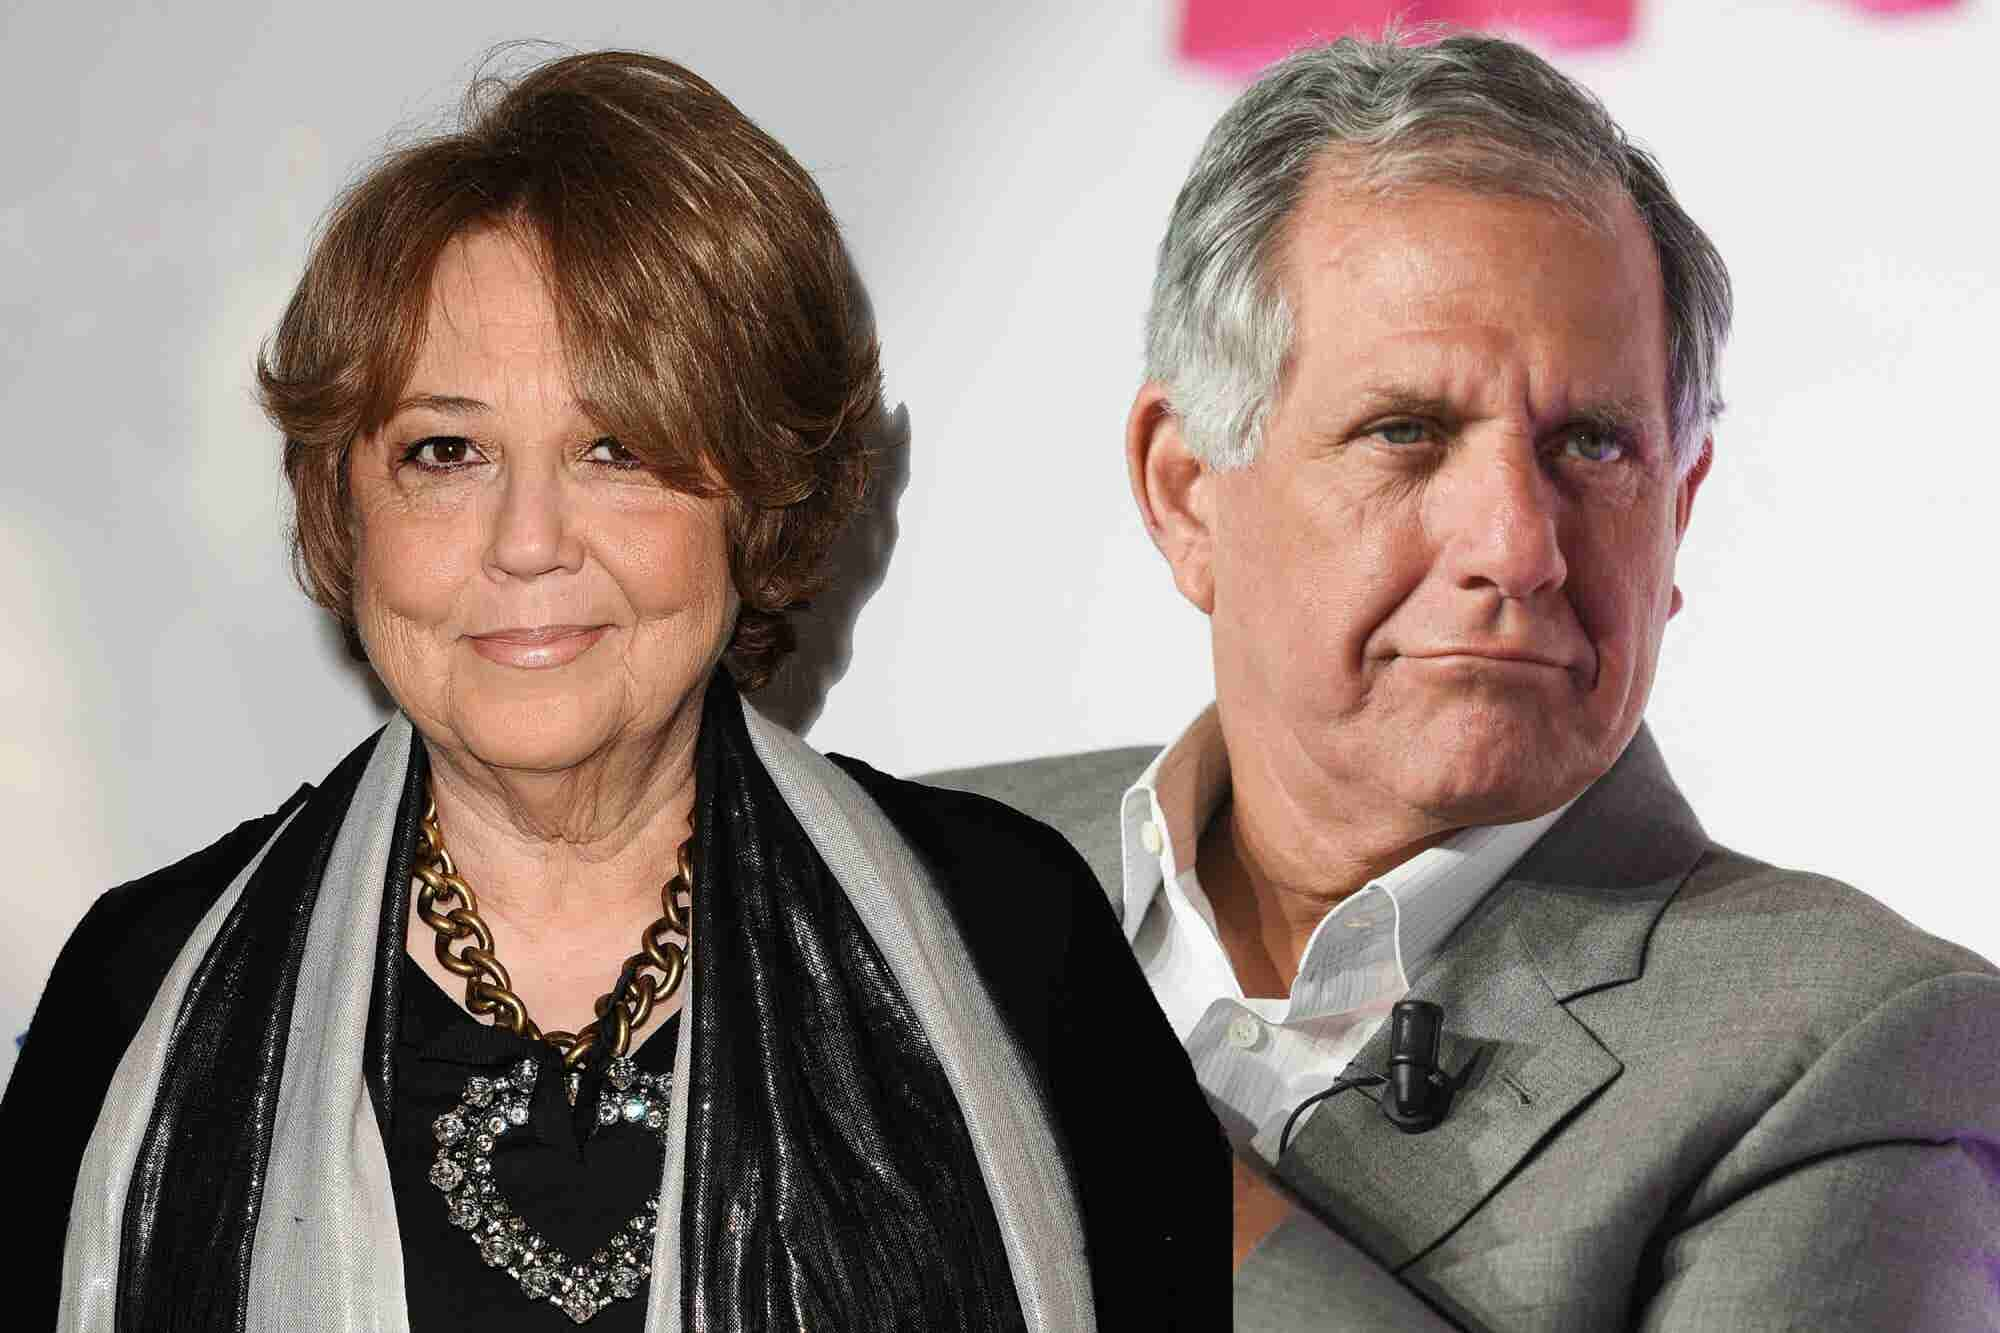 'Designing Women' Creator Calls Les Moonves 'Bullying Misogynist,' Says He Blacklisted Her